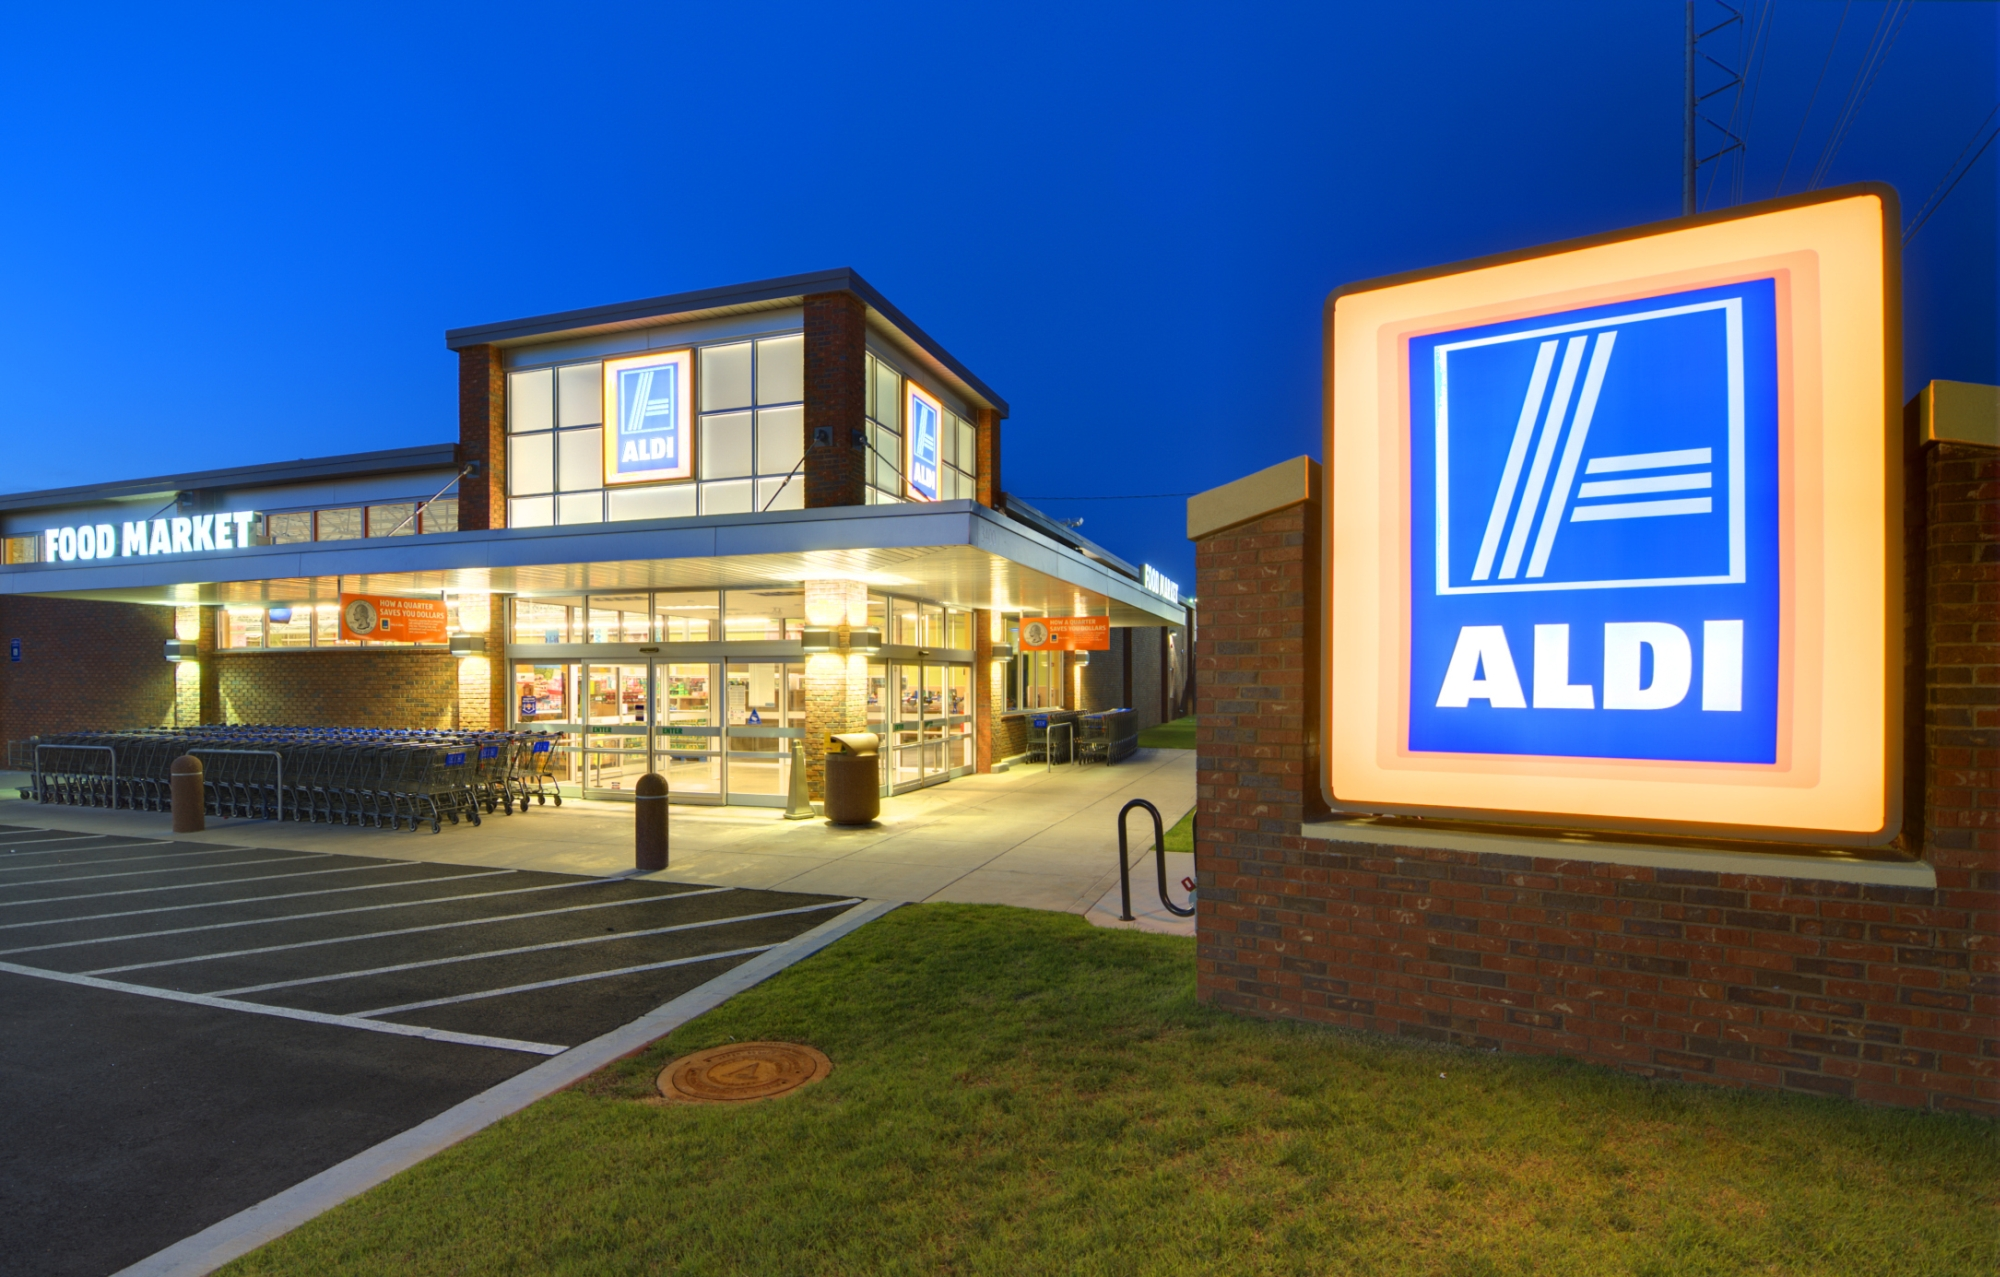 ALDI supermarkets are coming.